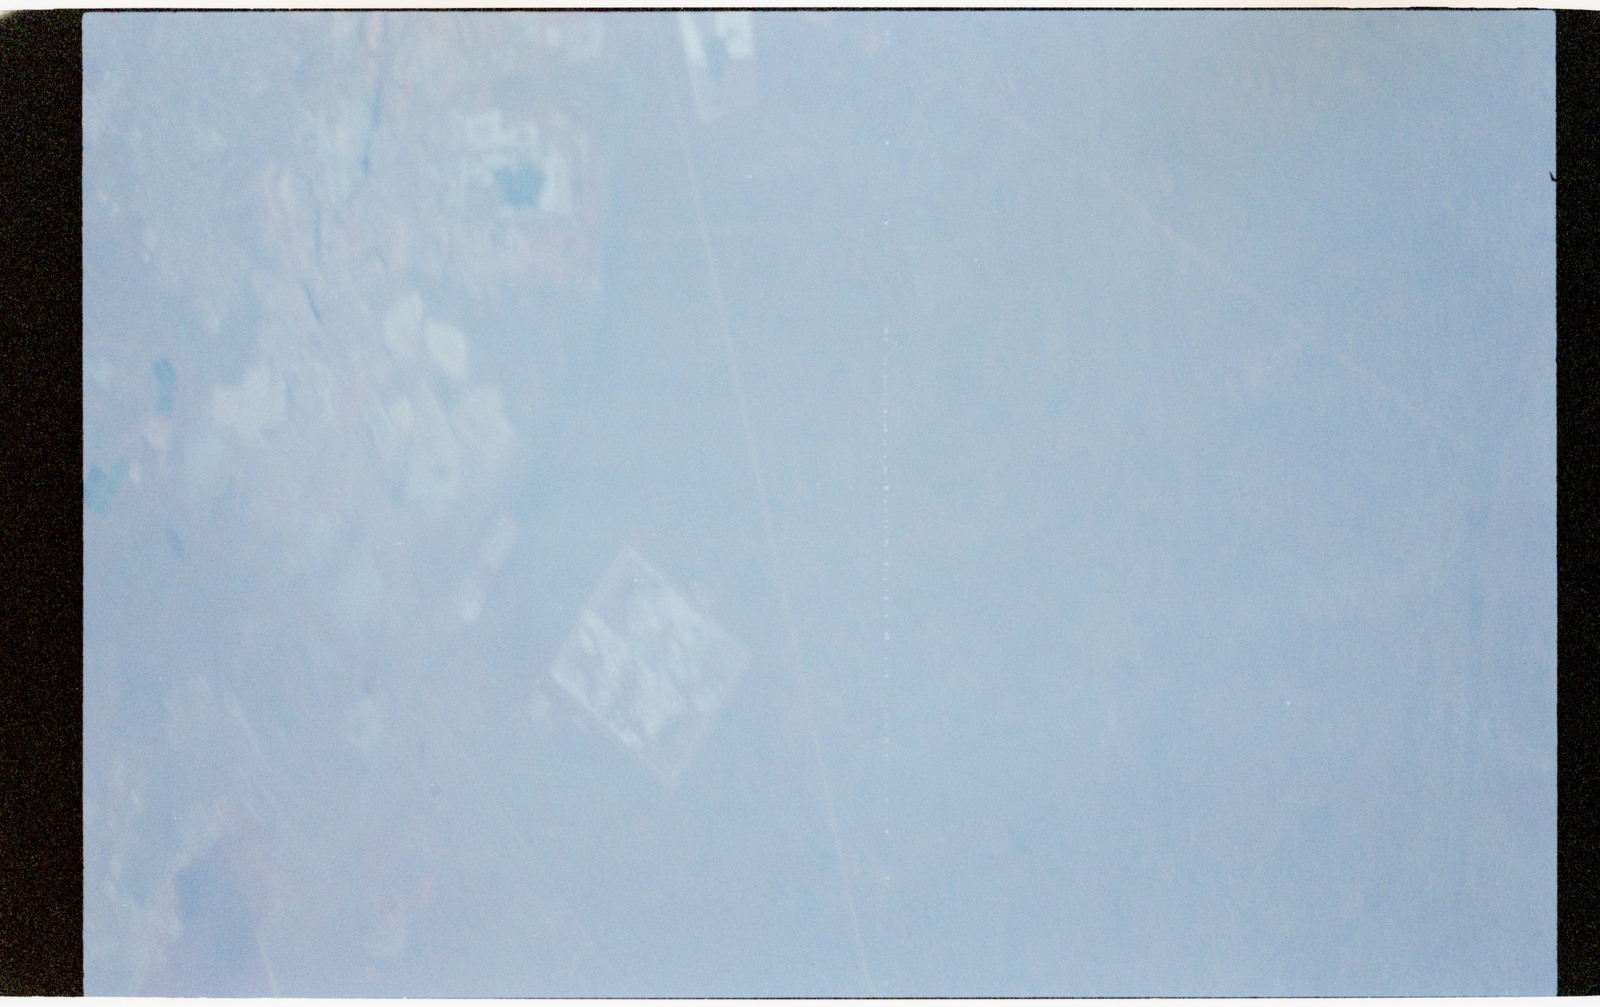 STS056-40-001 - STS-056 - Various unidentified Earth observations scenes -locations unknown.